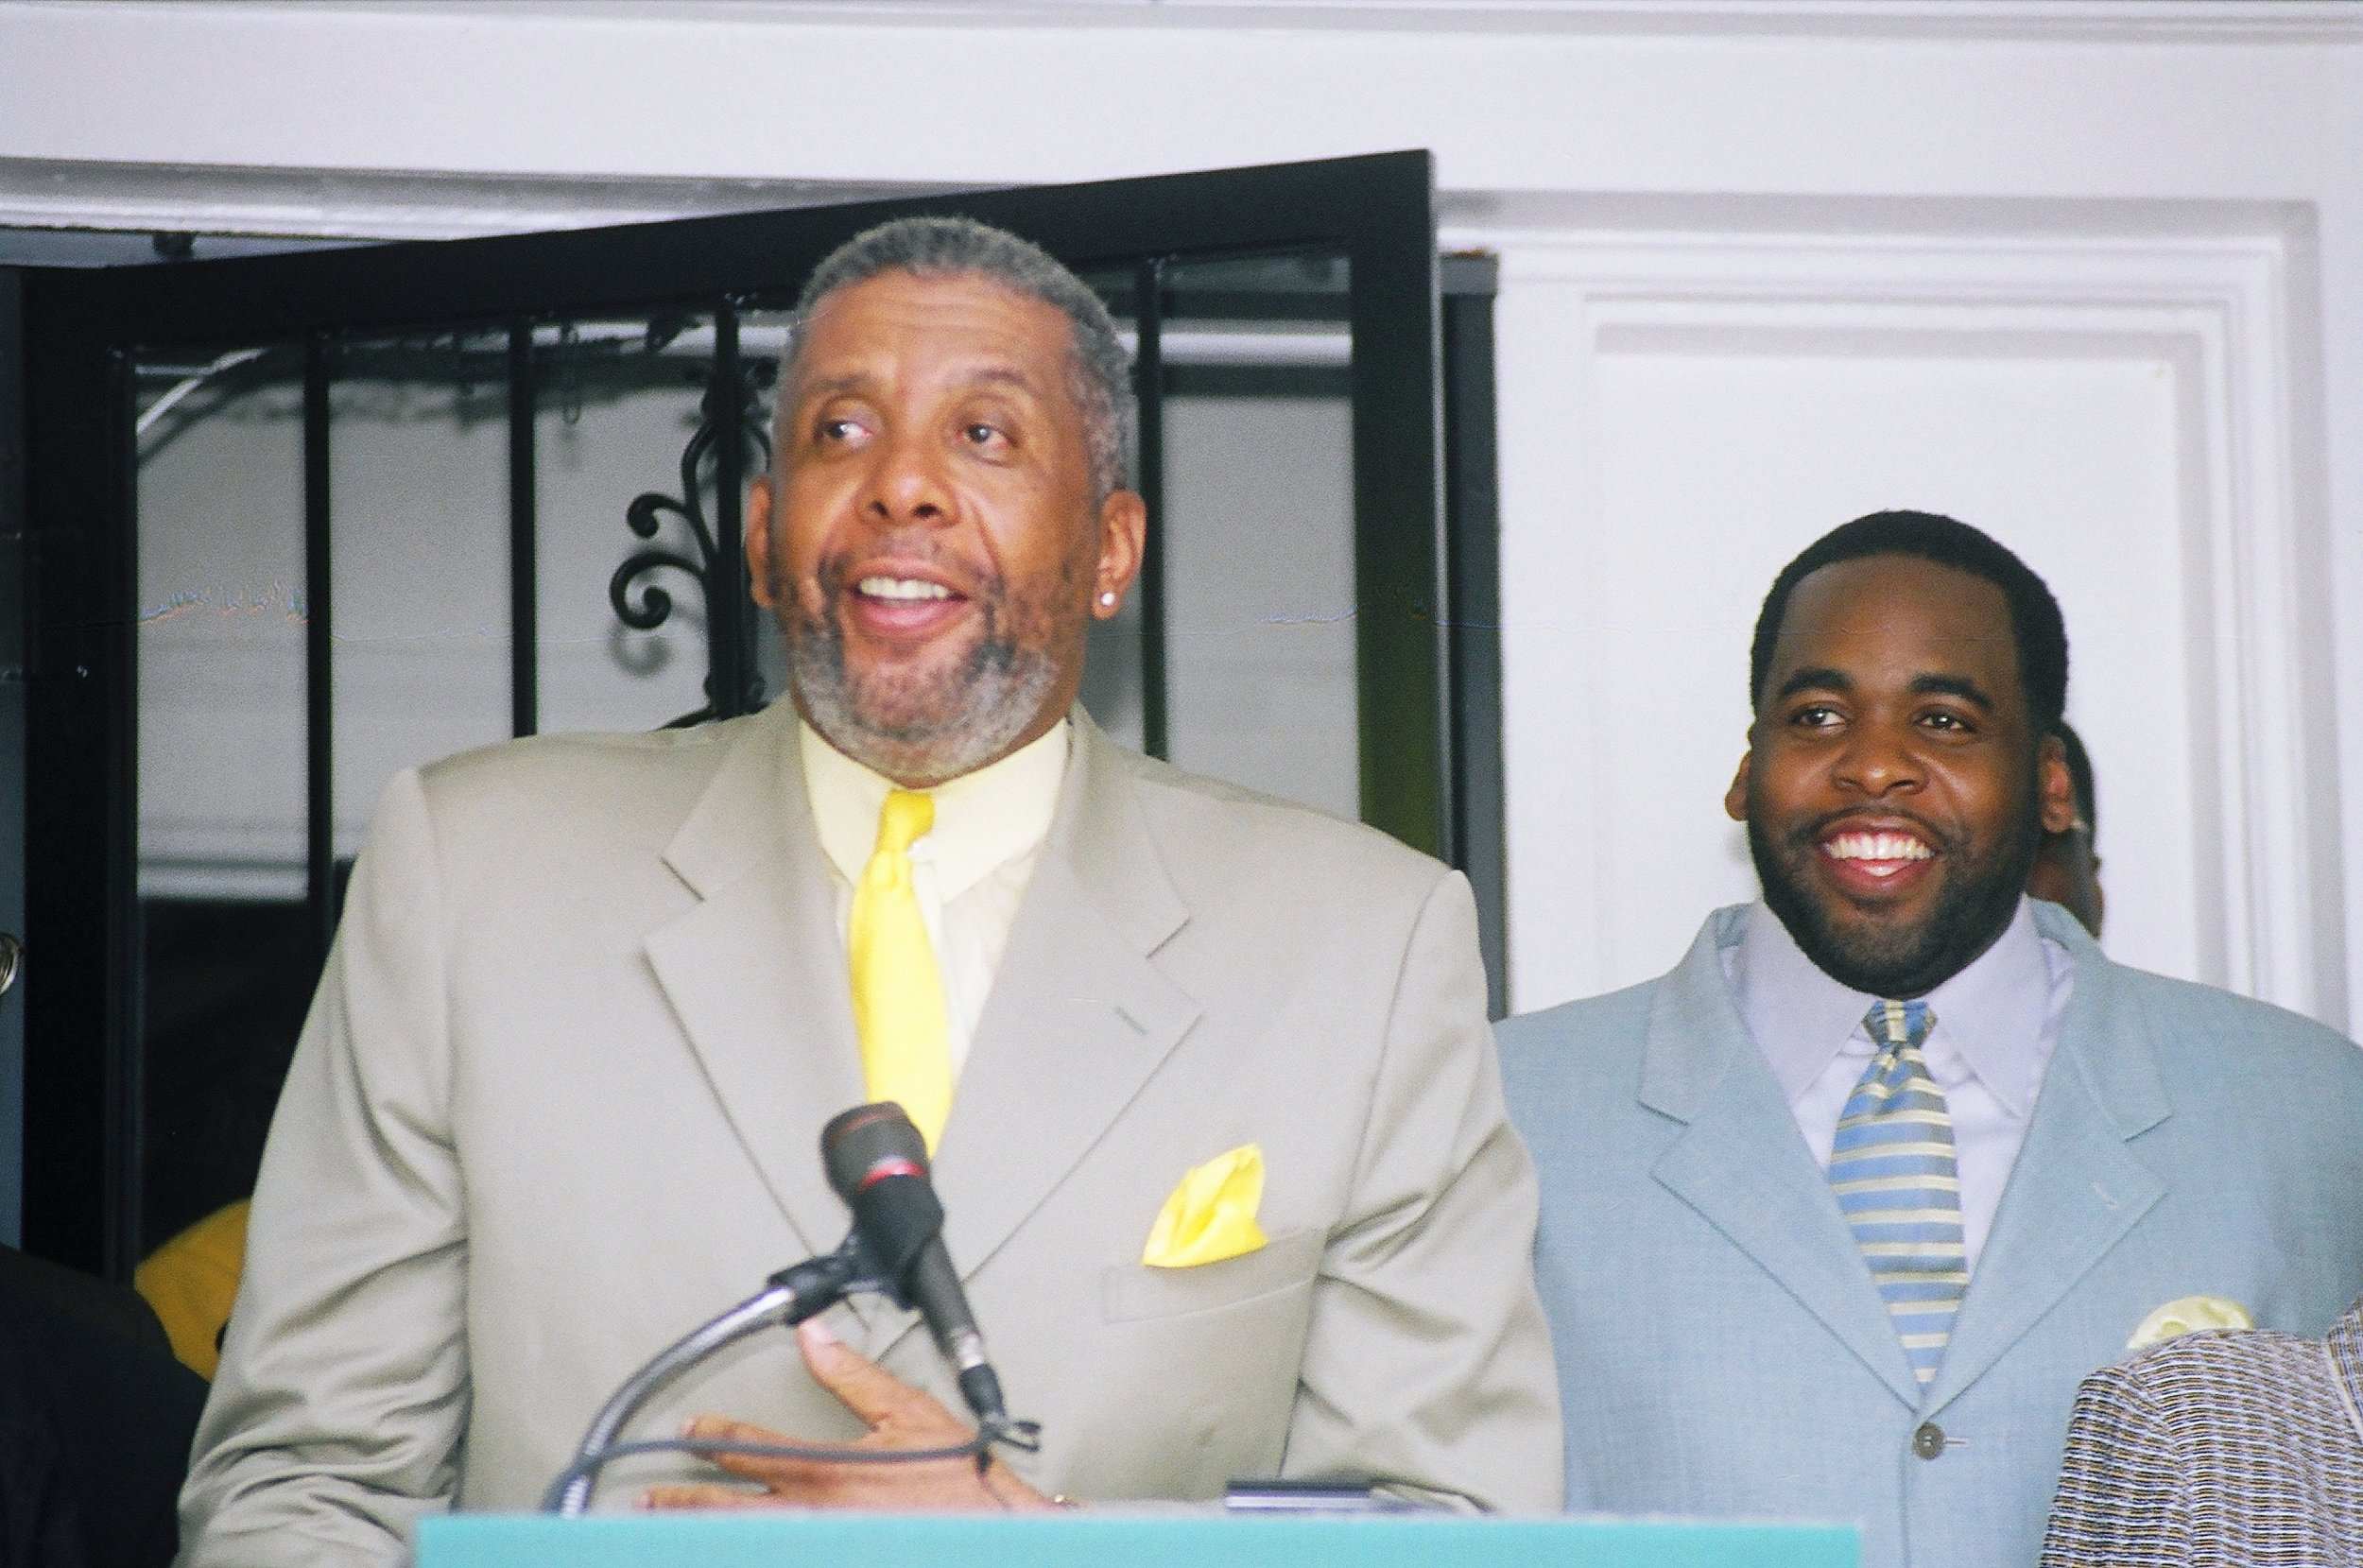 Kwame's father, Bernard, had built his political career advising campaigns and working in a series of roles in the Wayne County government.  Courtesy of Tim and Tobias Smith.